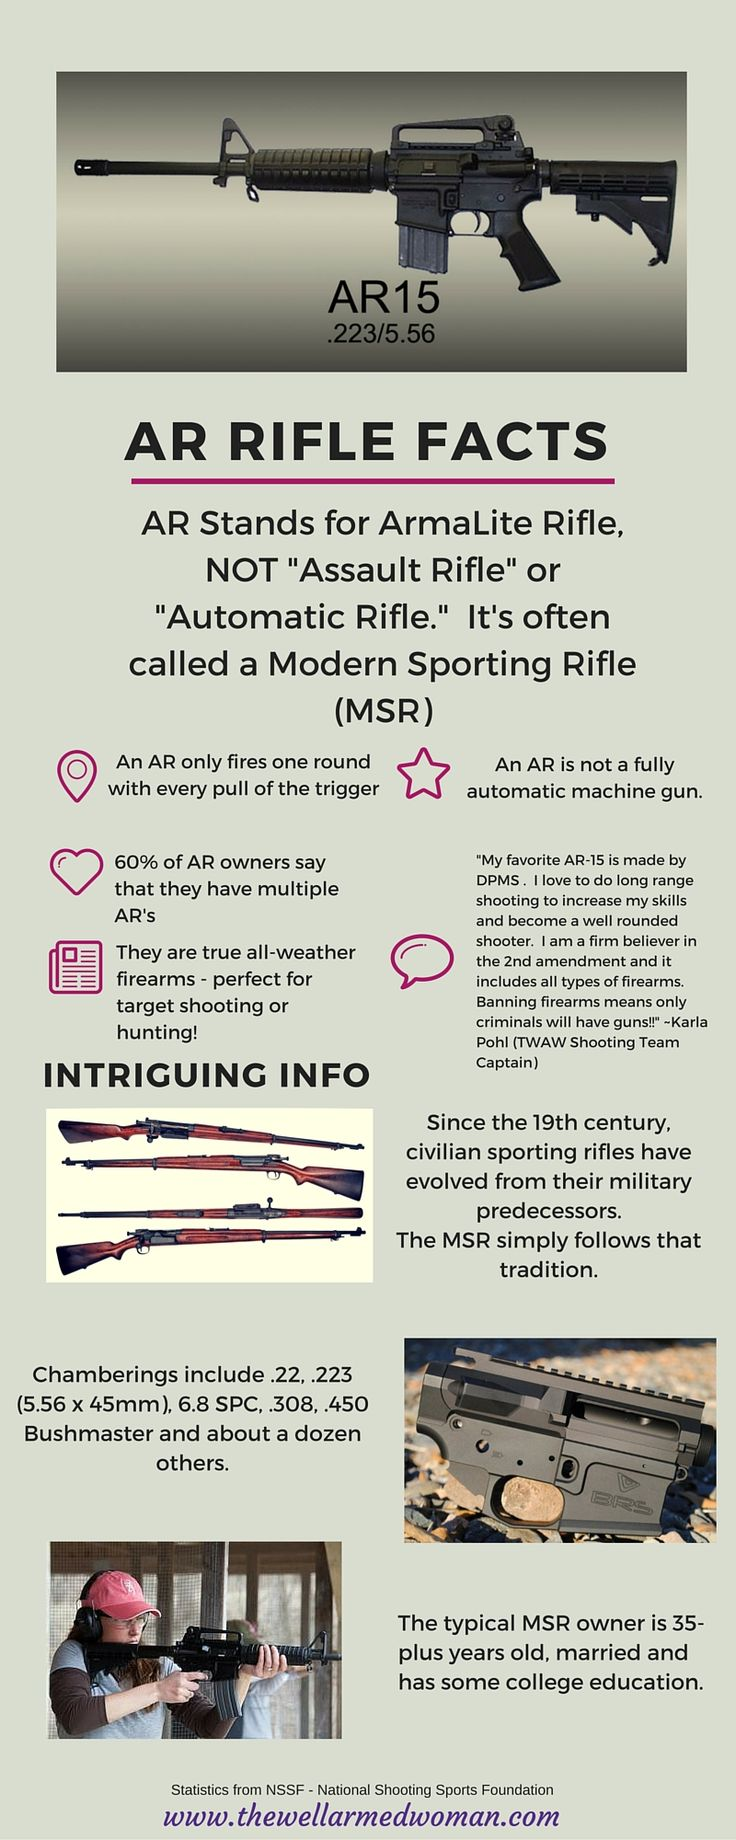 AR Rifle Facts and Statistics! @nssf provided info.